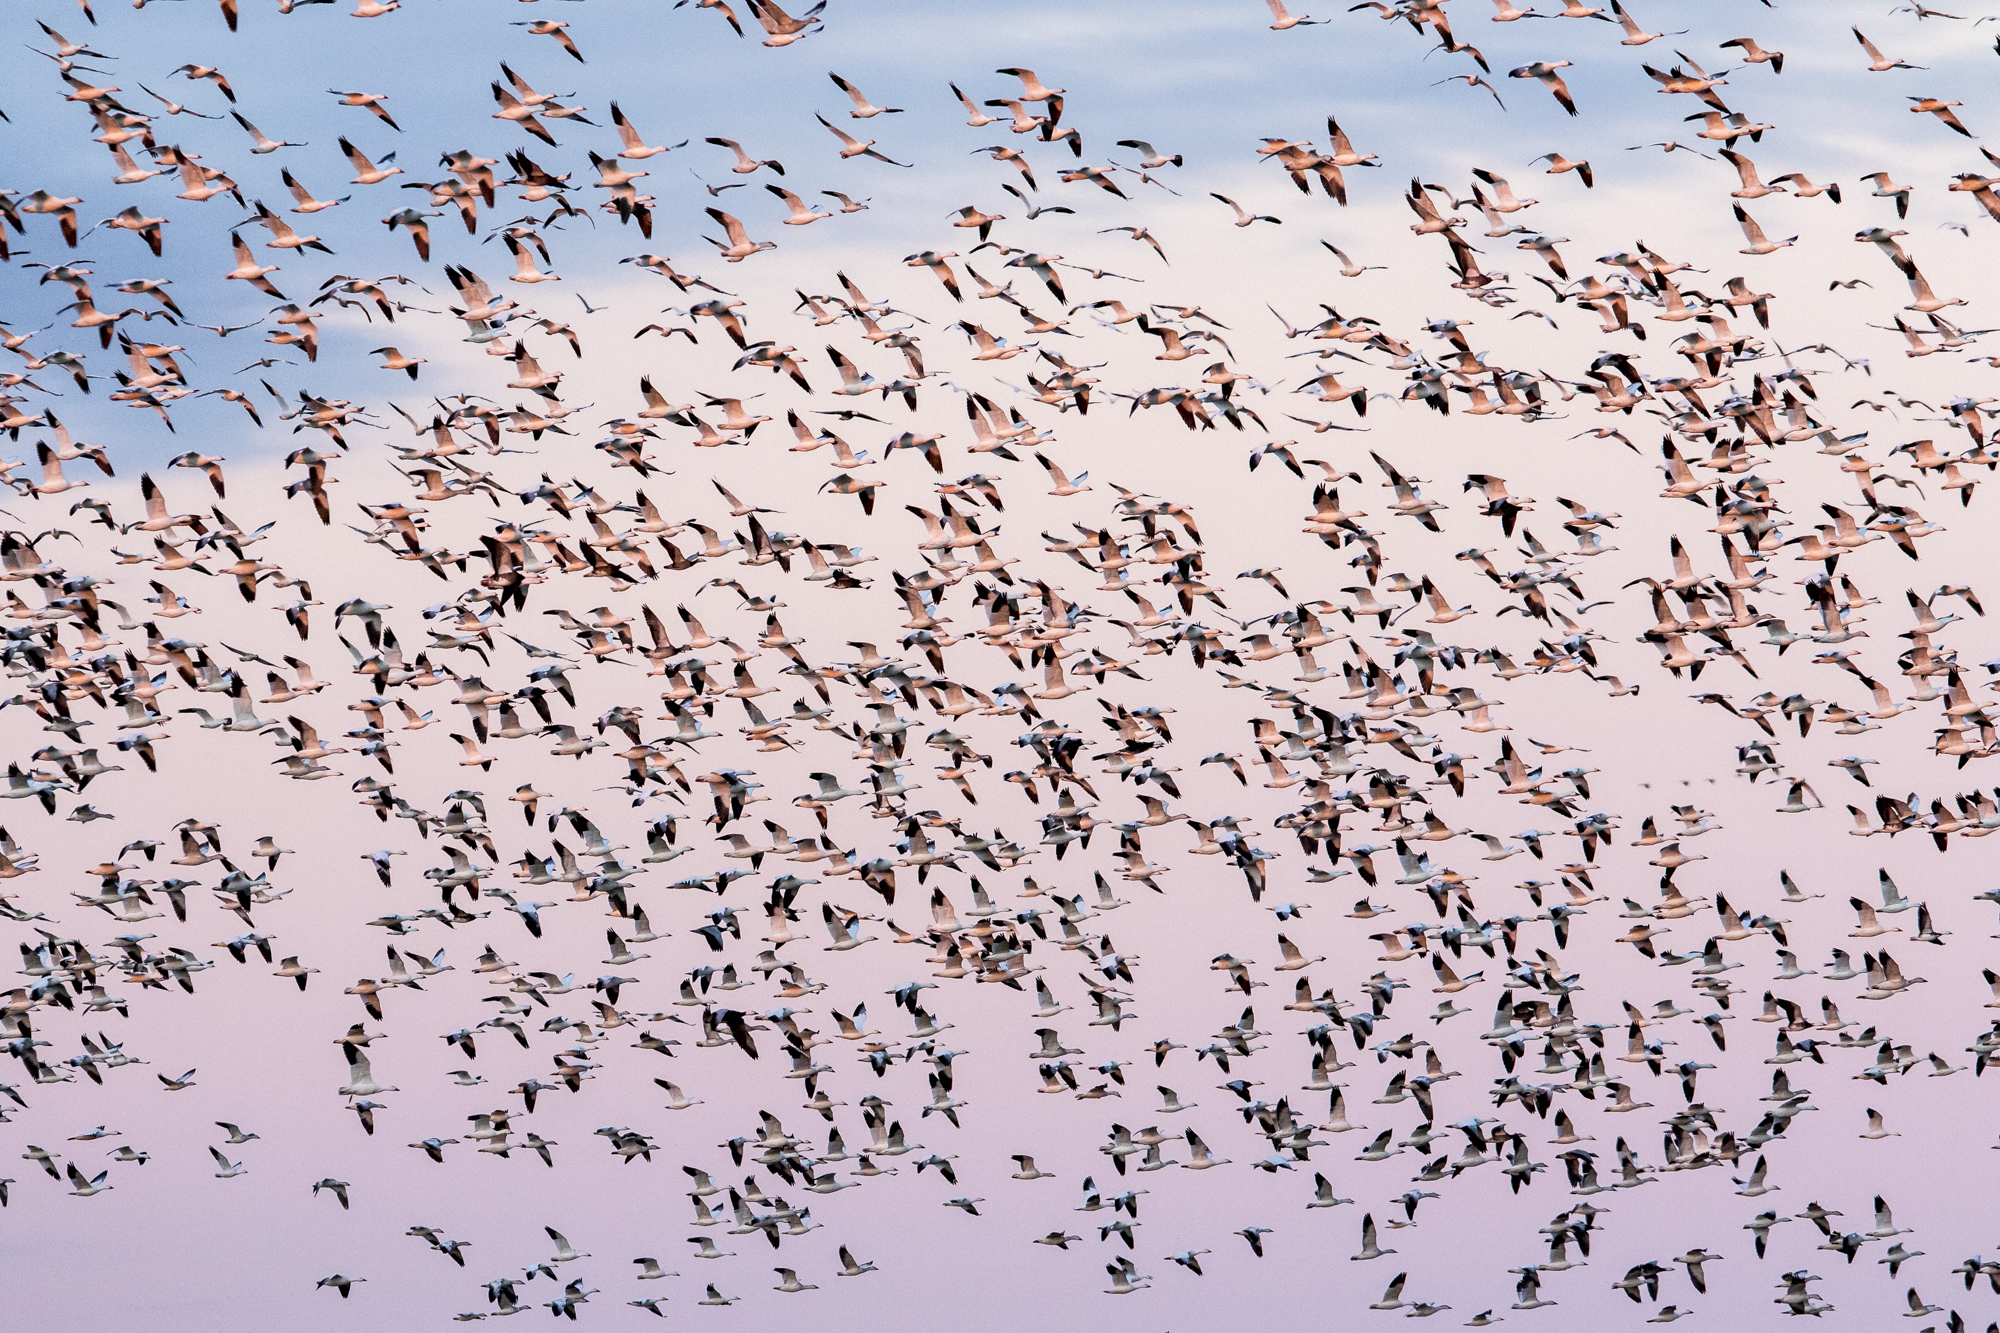 Snow geese swirling above the field at sunset